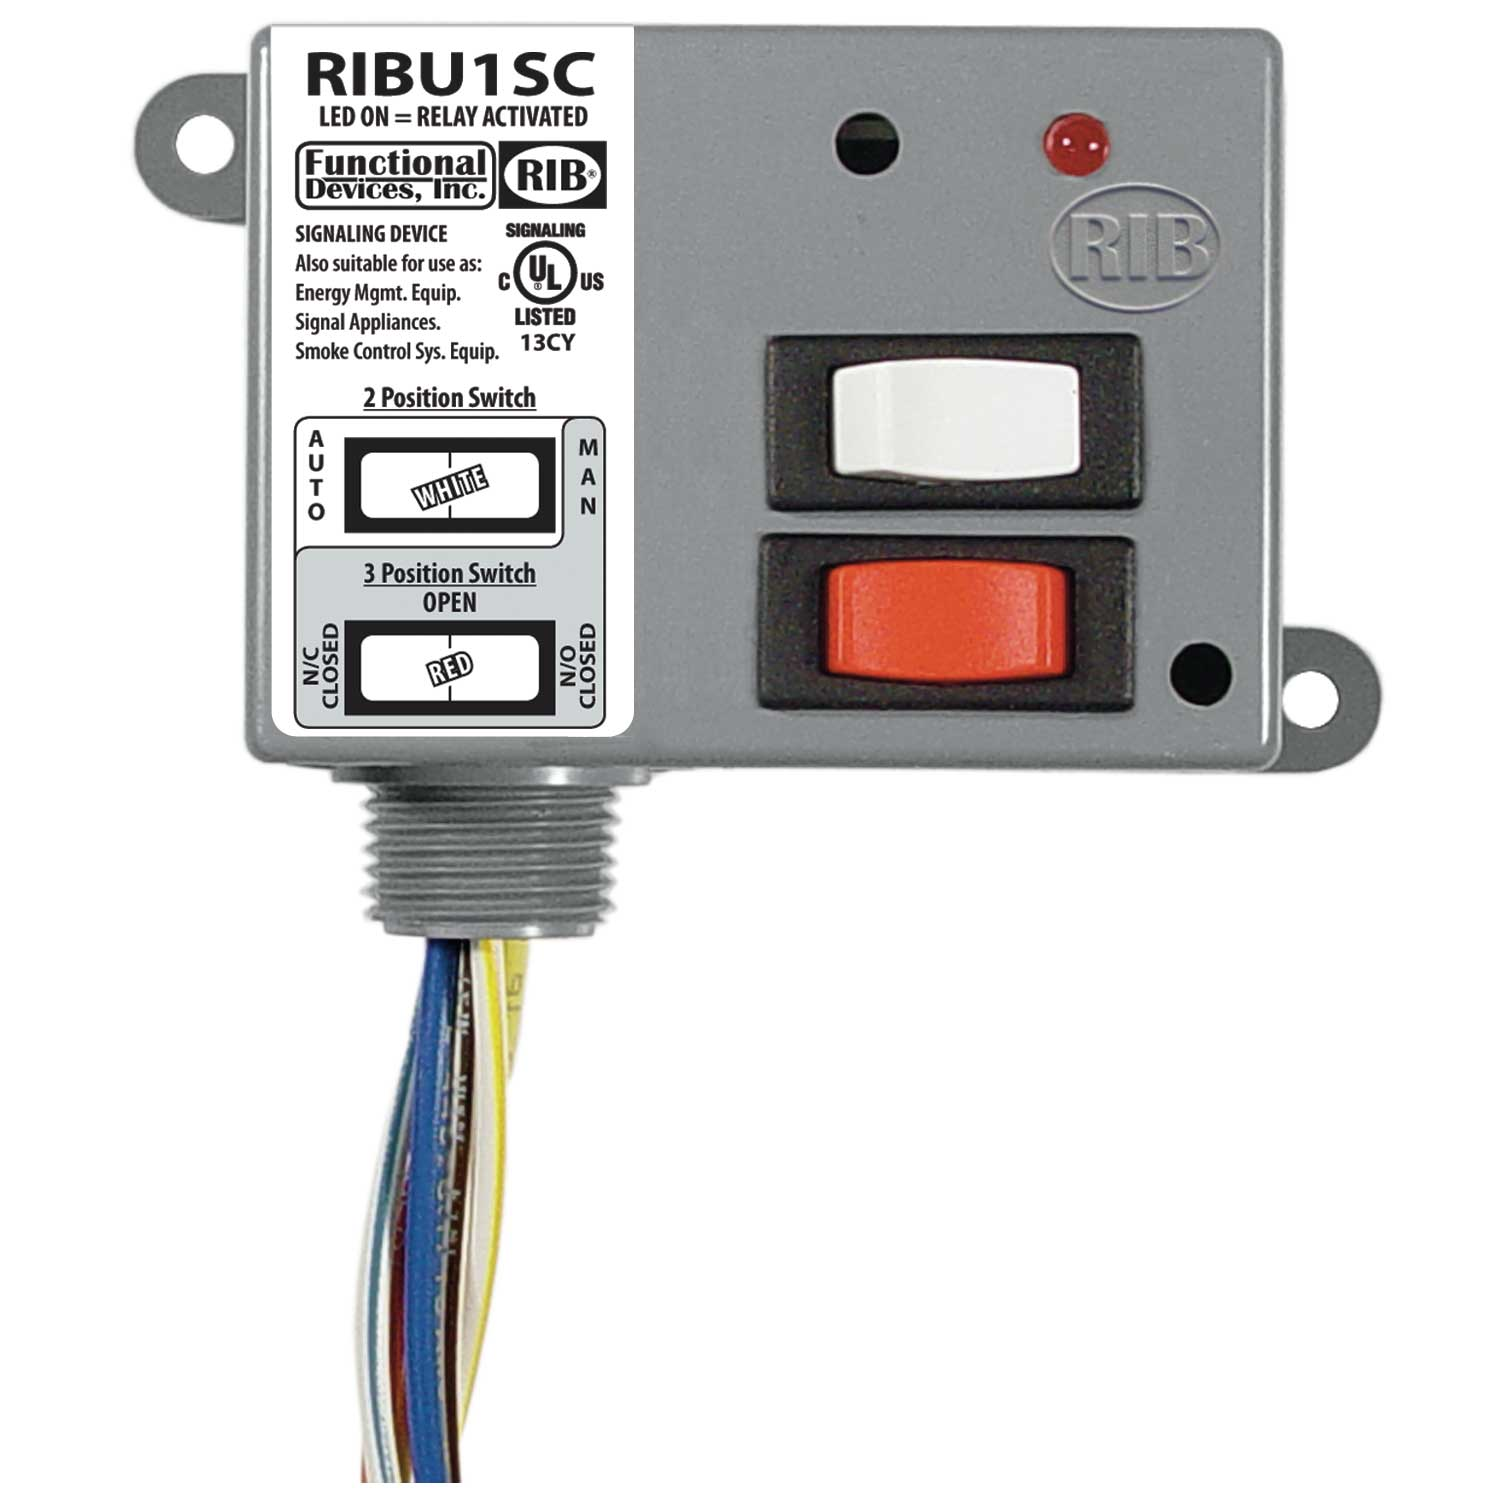 Functional Devices (RIB) RIBU1SC Enclosed Relay 10Amp SPDT + Override  10-30Vac/dc/120Vac at Controls Central